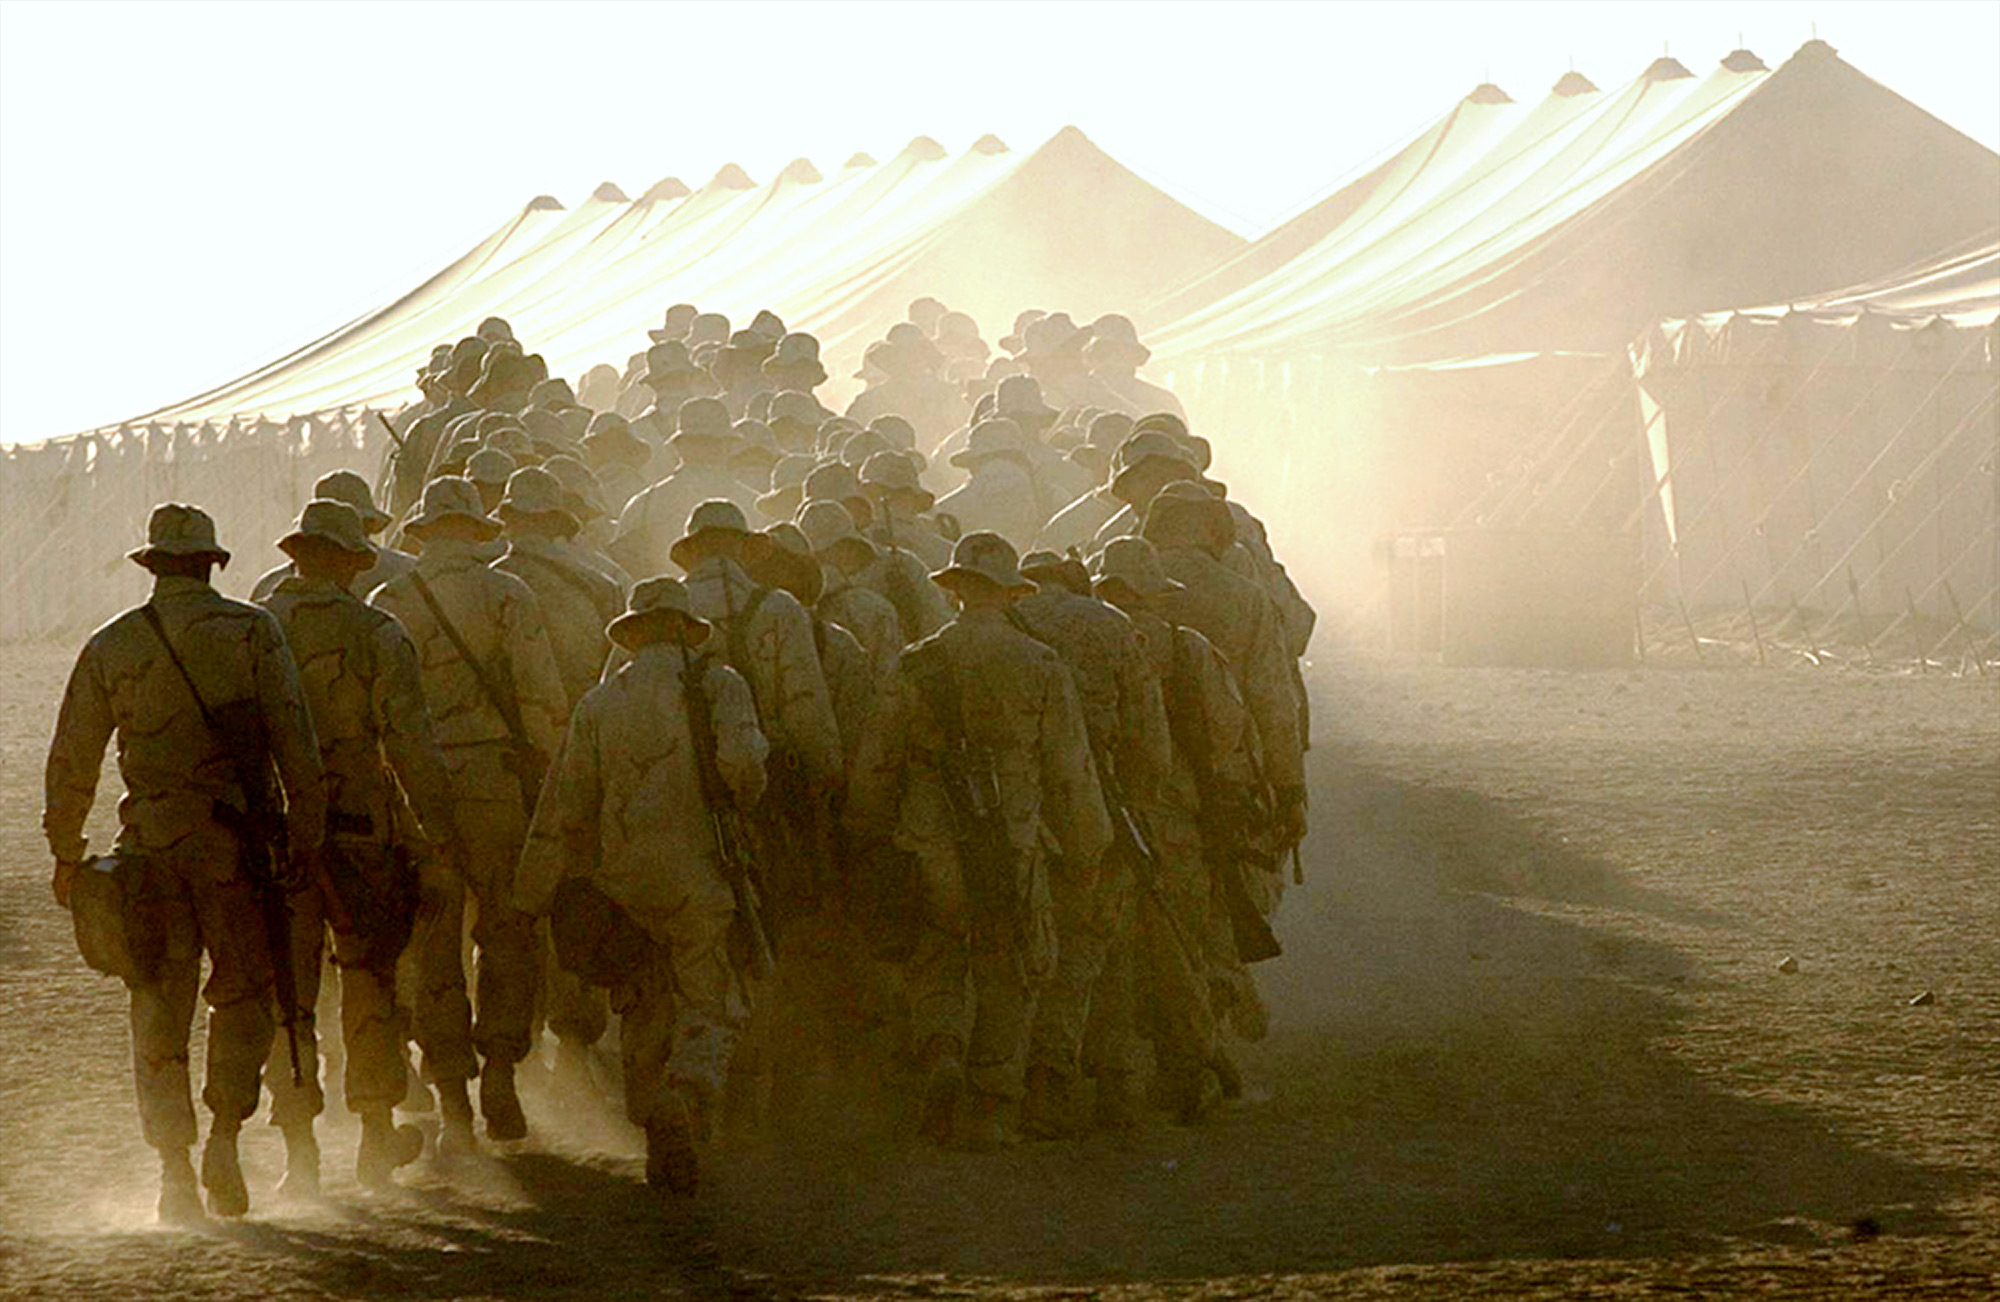 A cloud of dust kicks up as Marines head to the mess hall for breakfast at Camp Coyote in northern Kuwait on March 16, 2003. Over 6000 Marines, seamen and British forces waited in the camp for the U.S.-led strike against Iraq.